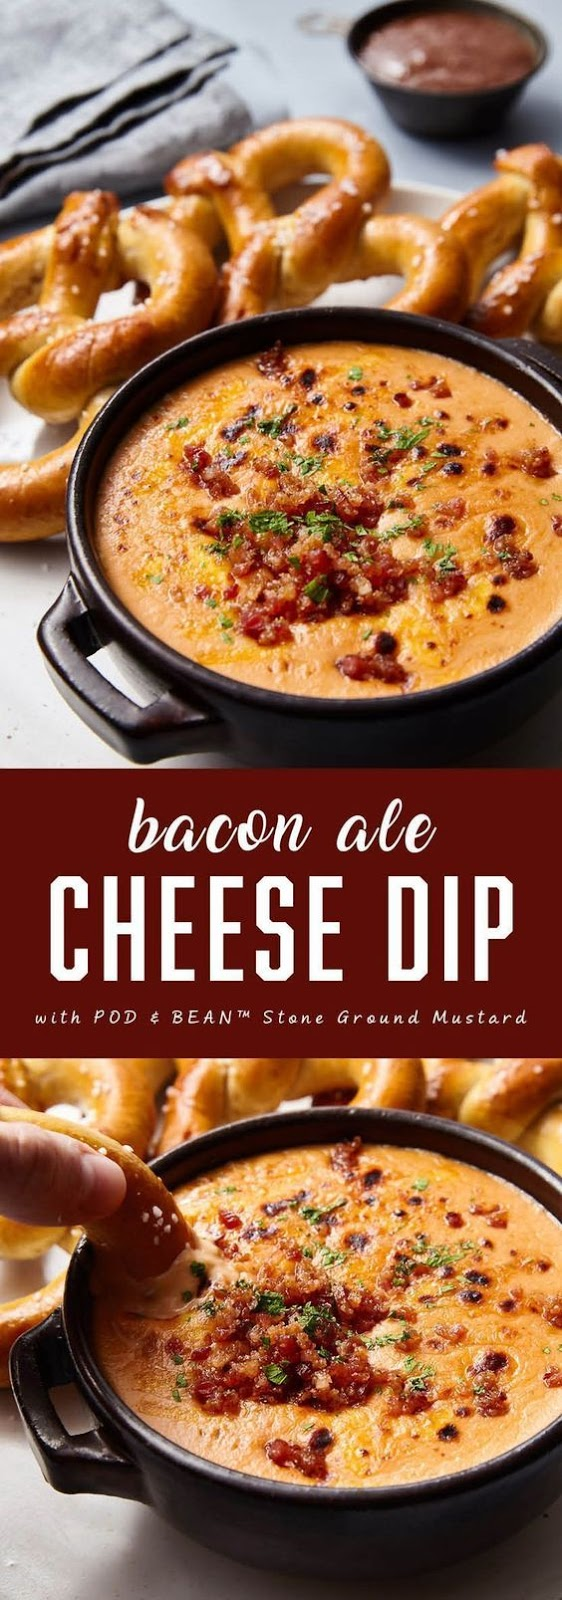 Keto Bacon Ale Cheese Dip